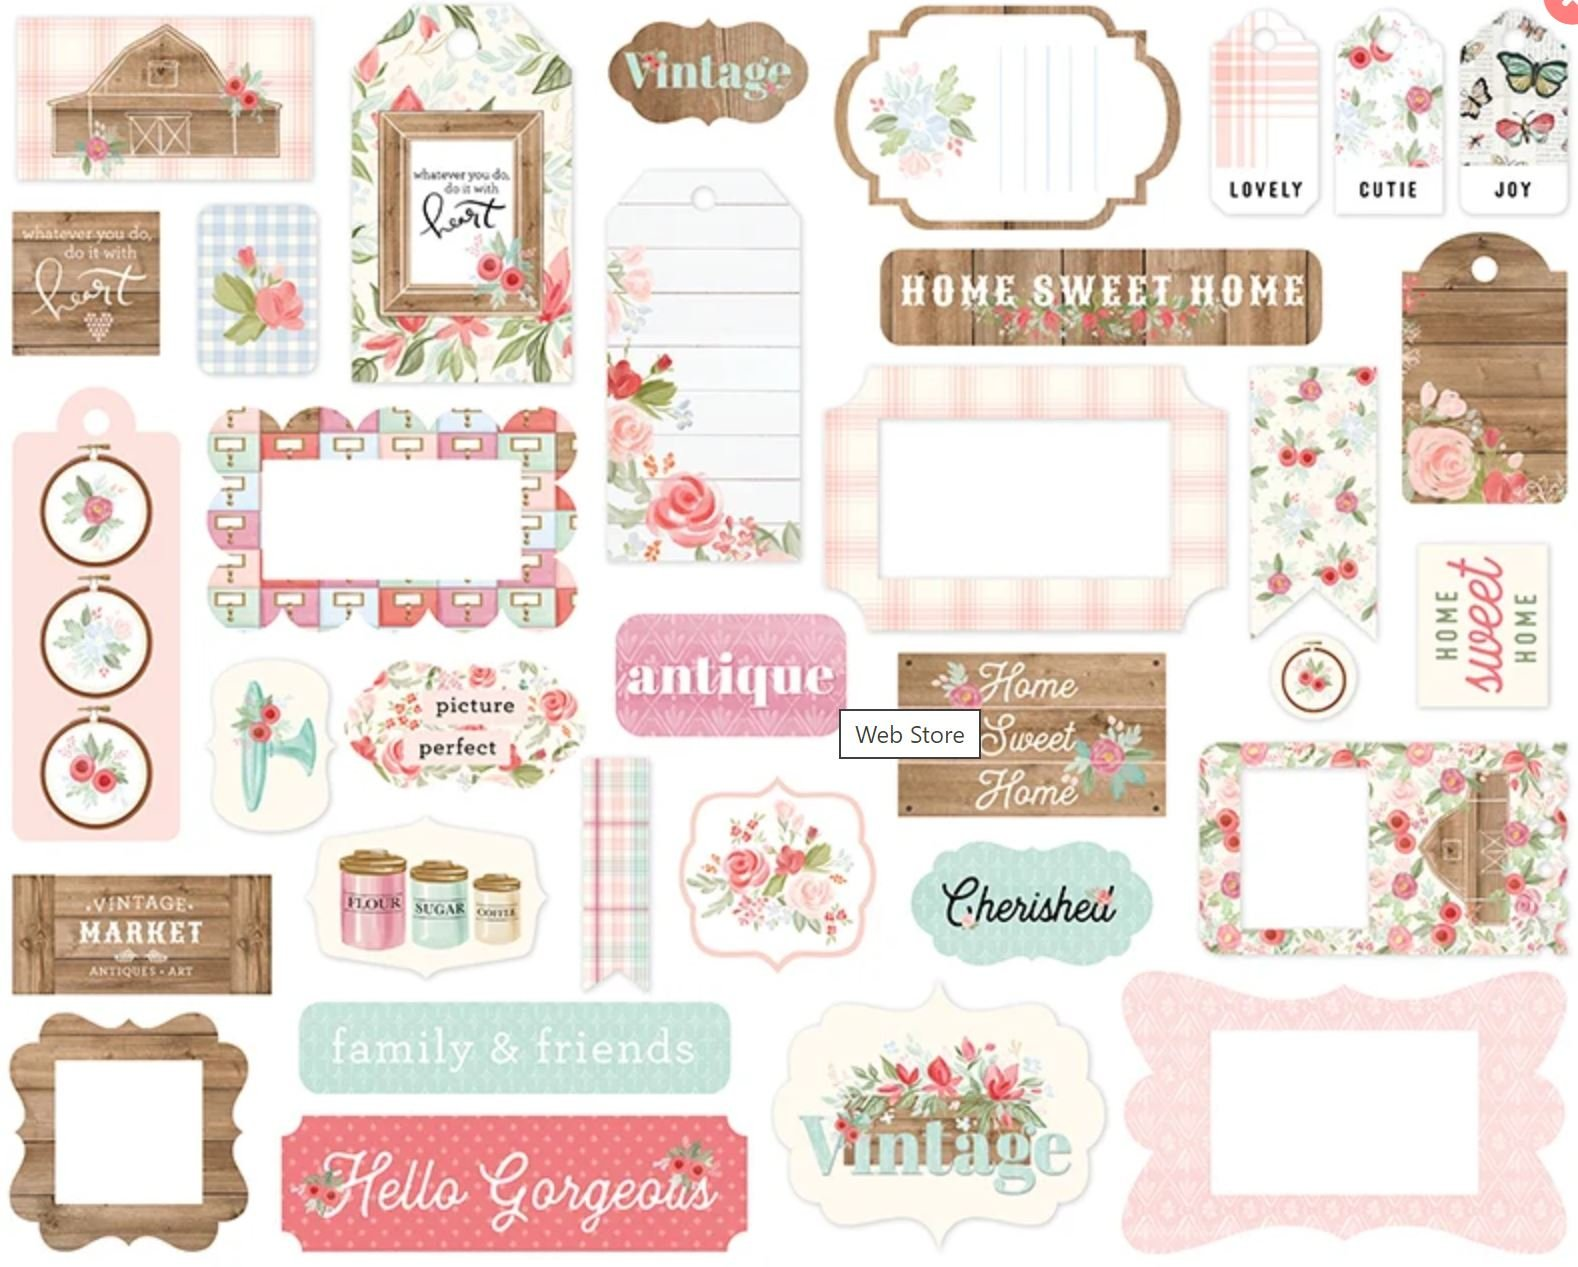 farmhouse market frames and tags